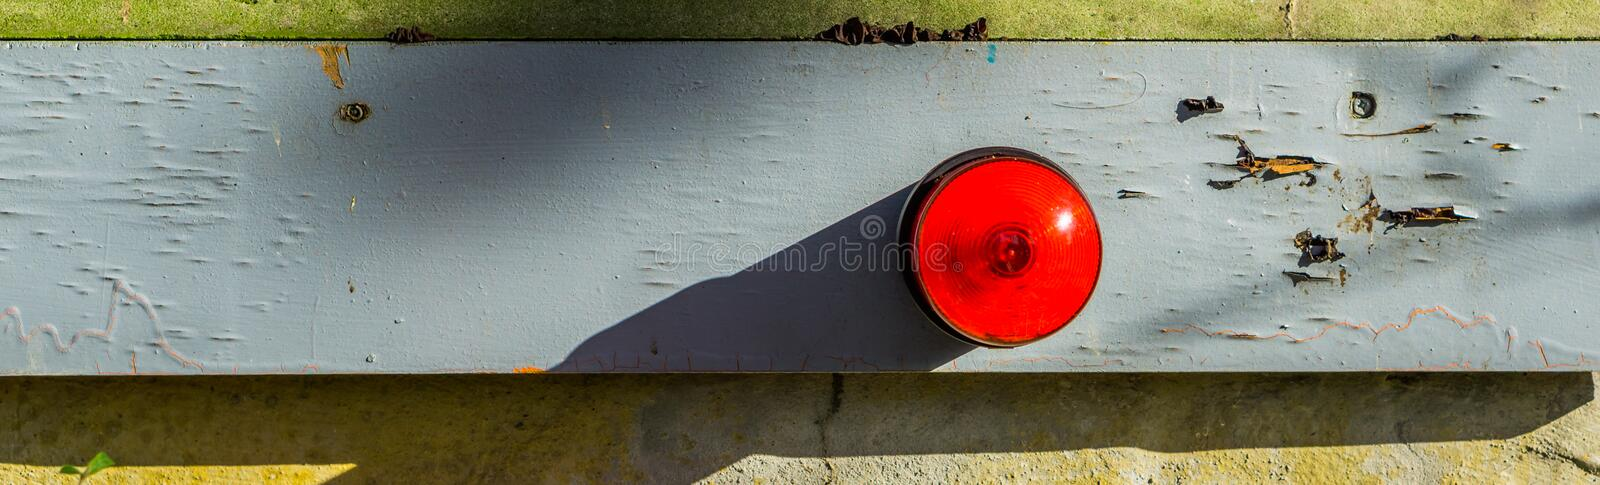 Basic red alarm light, security system for safety. A basic red alarm light, security system for safety, unlit alarm royalty free stock photography